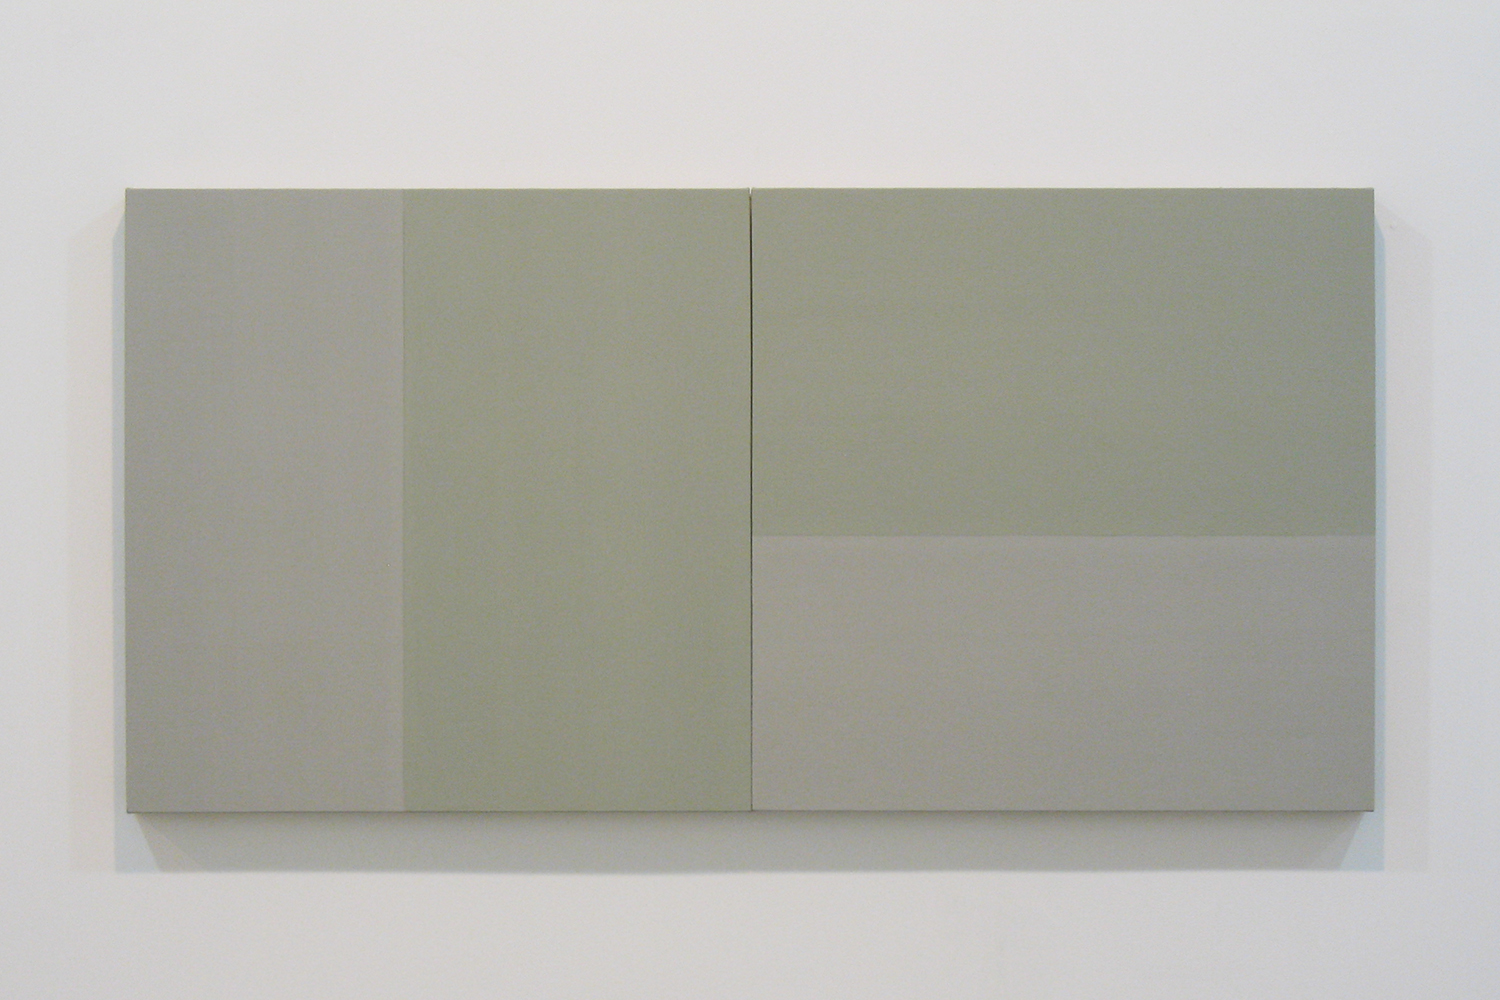 TS0811|Gesso on linen on panel|35 x 70 cm (set of 2)|2008